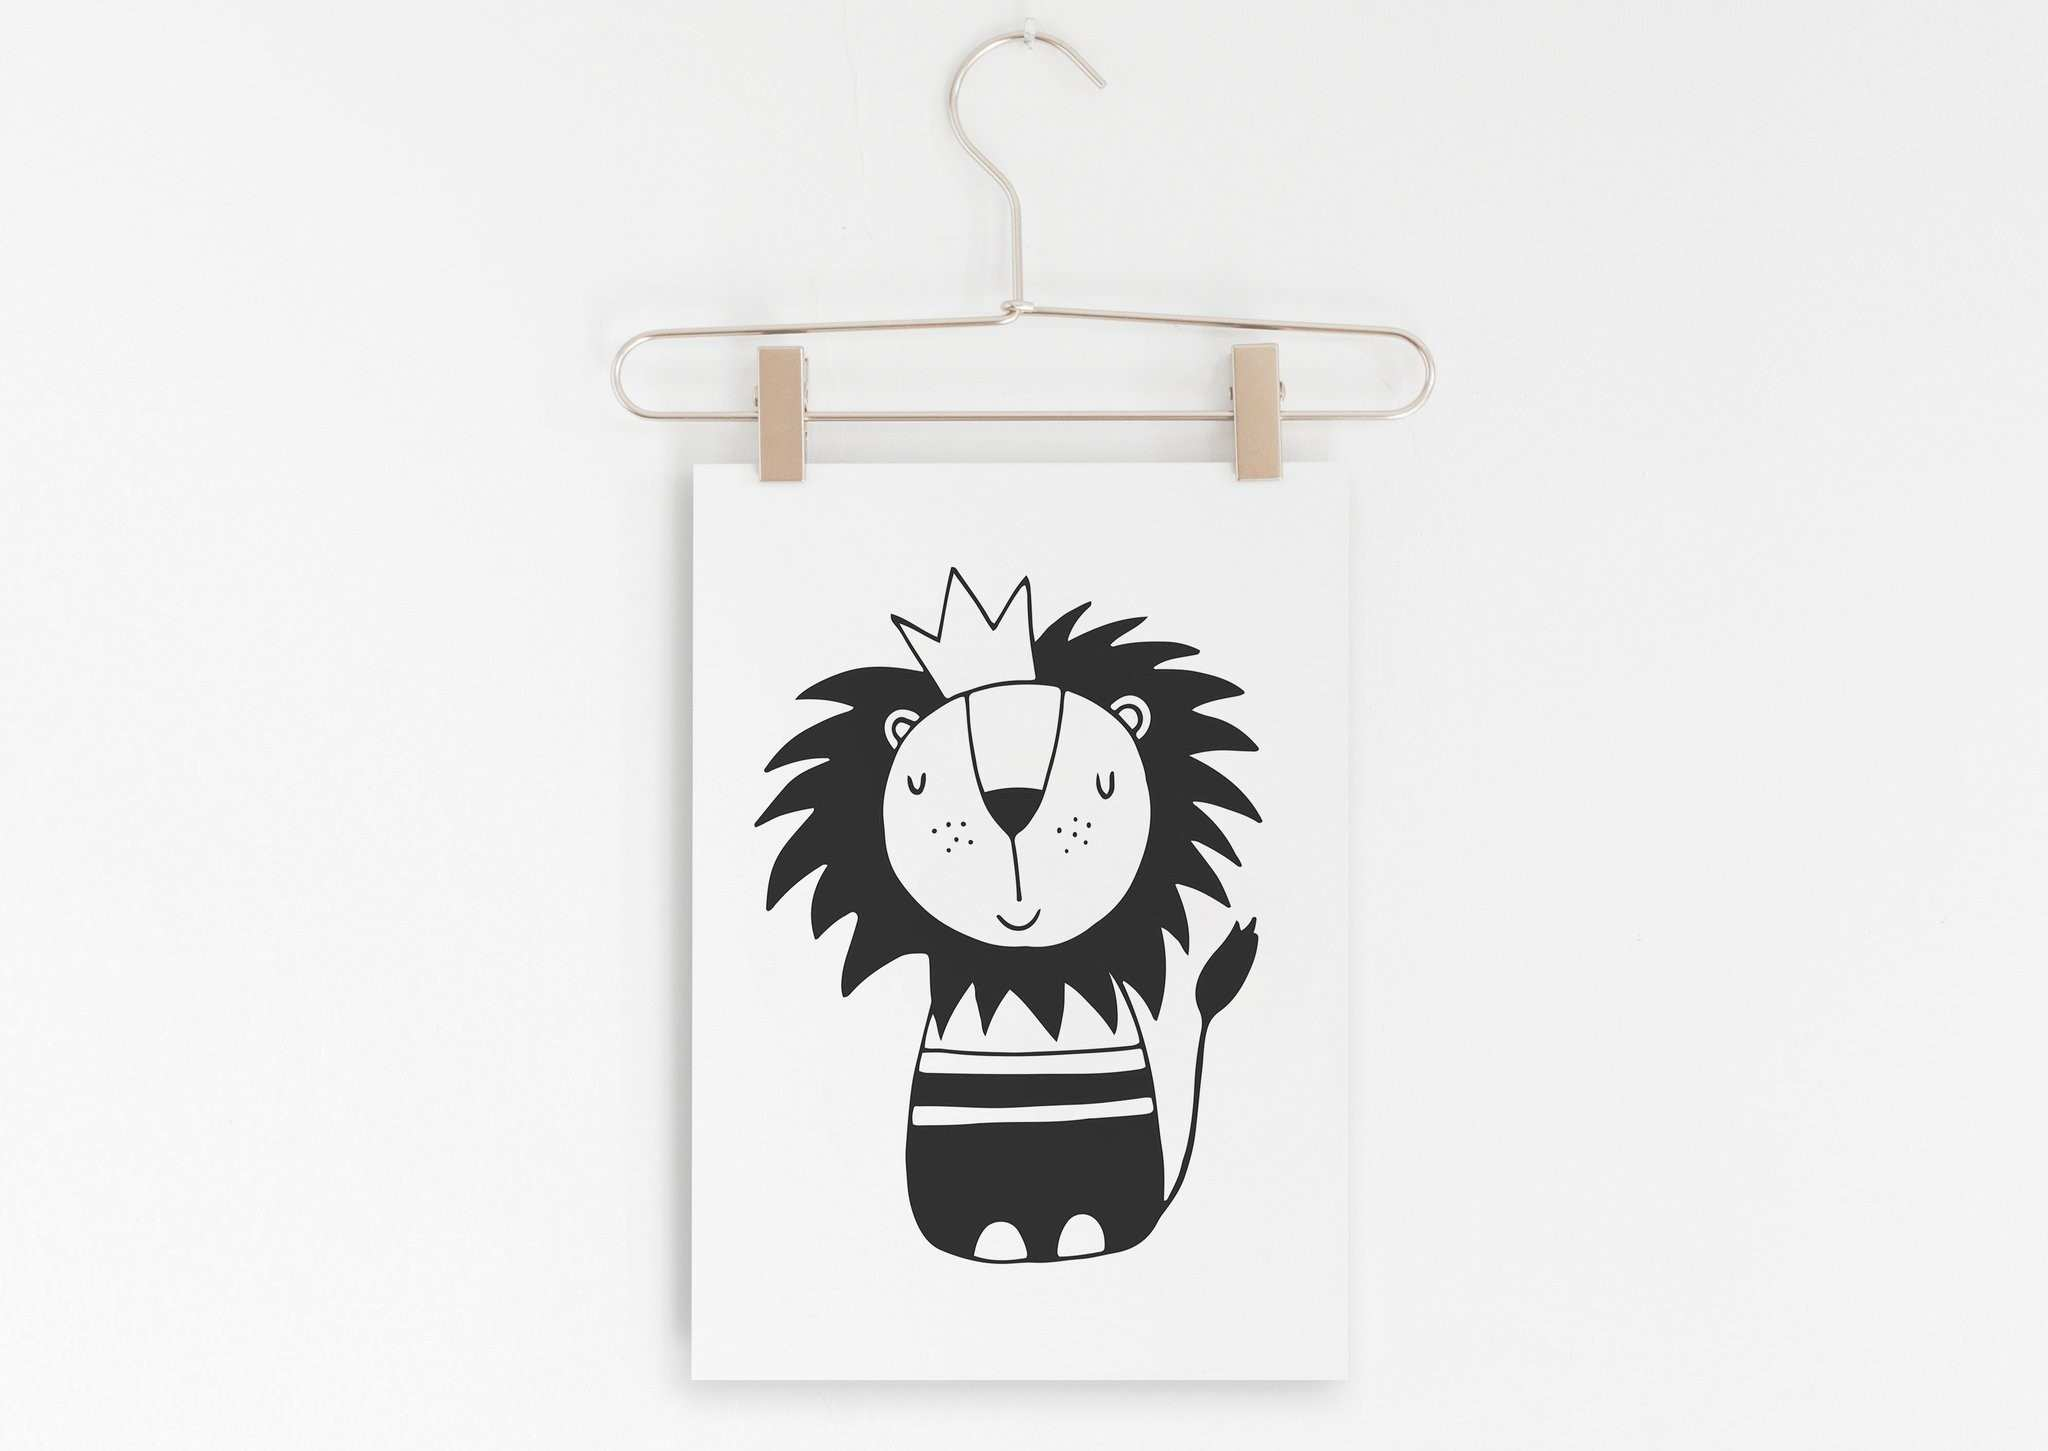 Lion Monochrome Black and White Baby Boy Nursery Printable Wall